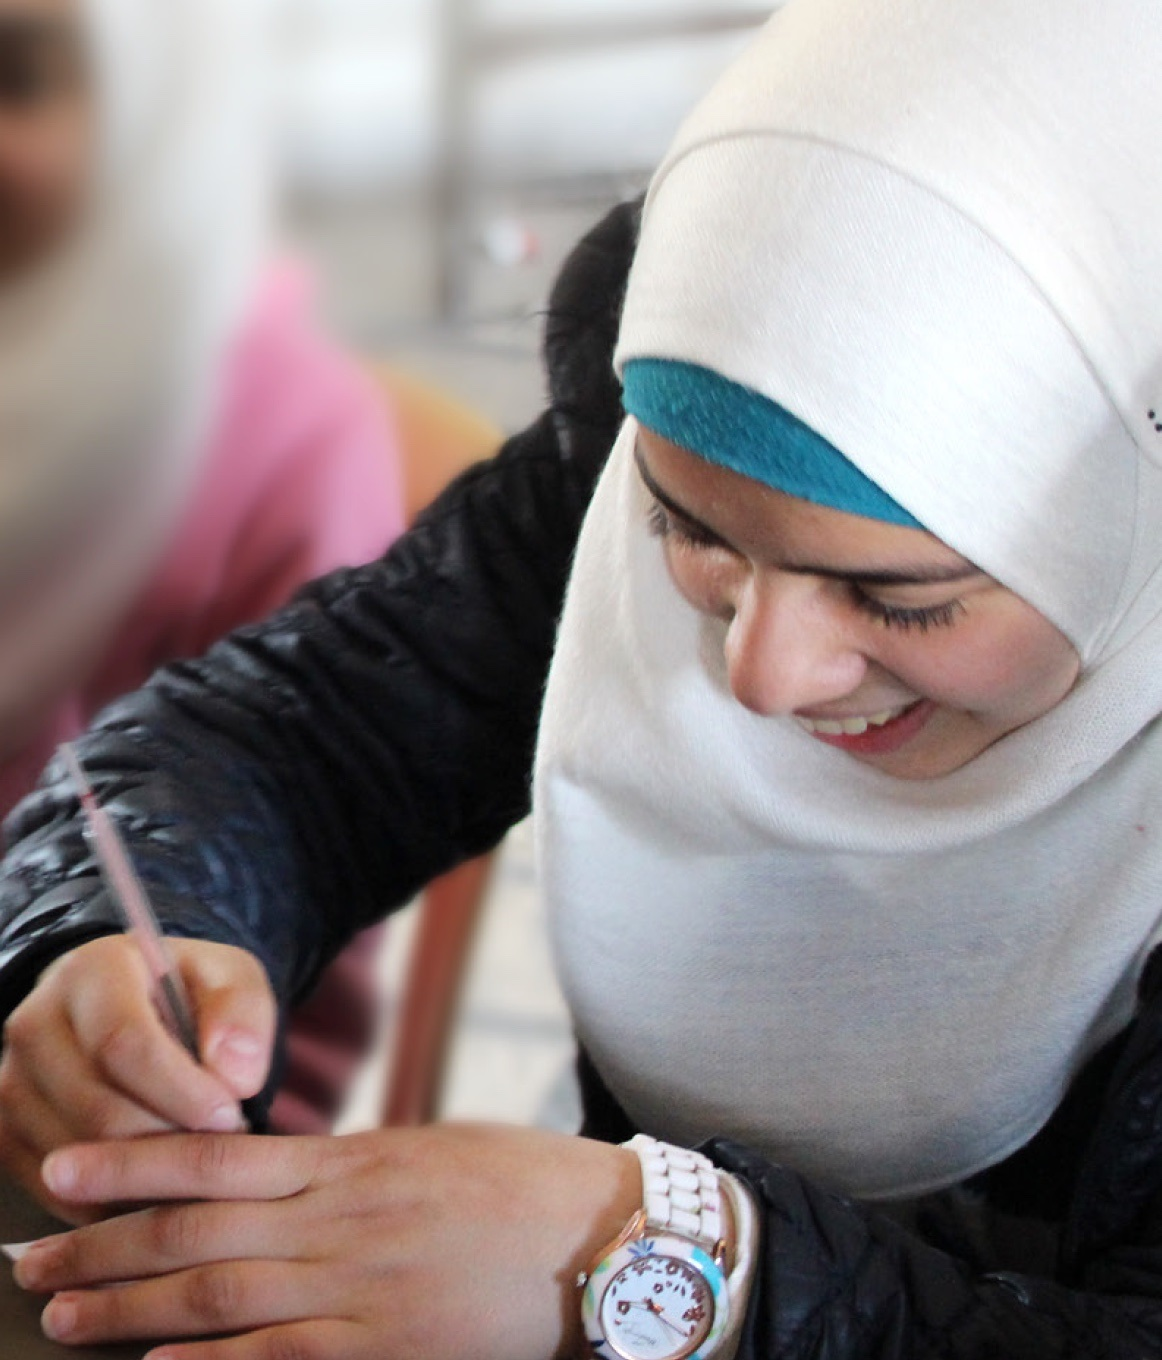 Photo of Rama a thirteen-year-old girl, from Homs, Syria who is enrolled in a Jesuit Refugee Service (JRS) center for children. She is sitting at a school desk, writing.